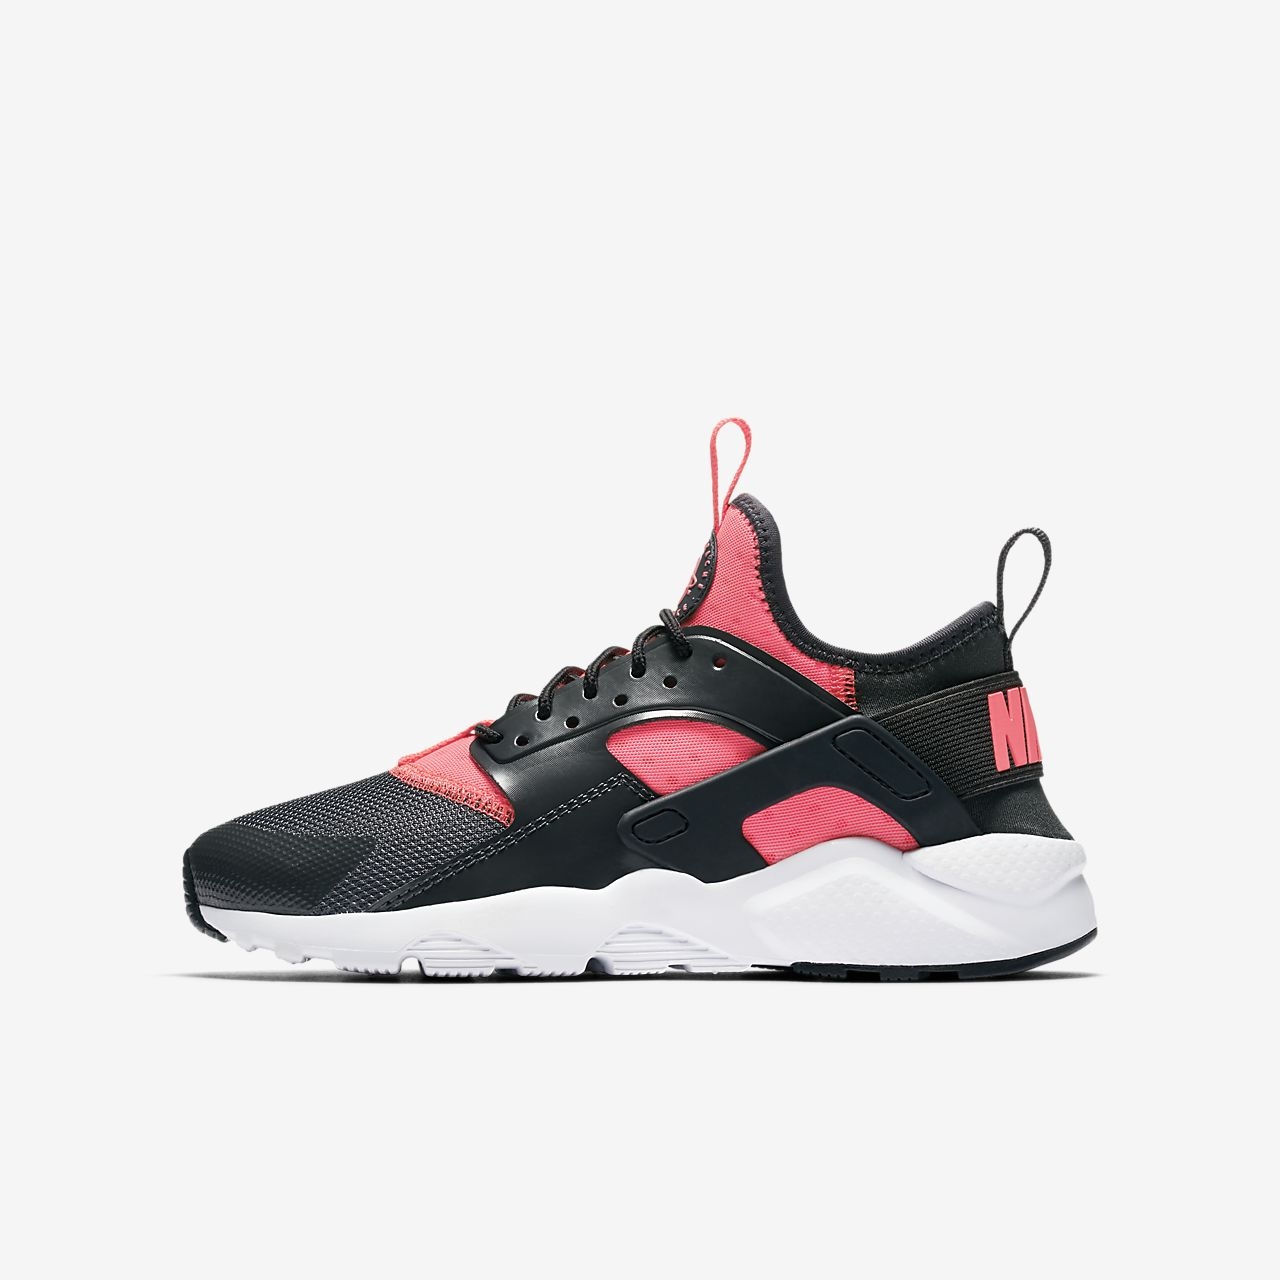 Nike Air Huarache Run Ultra GS 大童运动童鞋